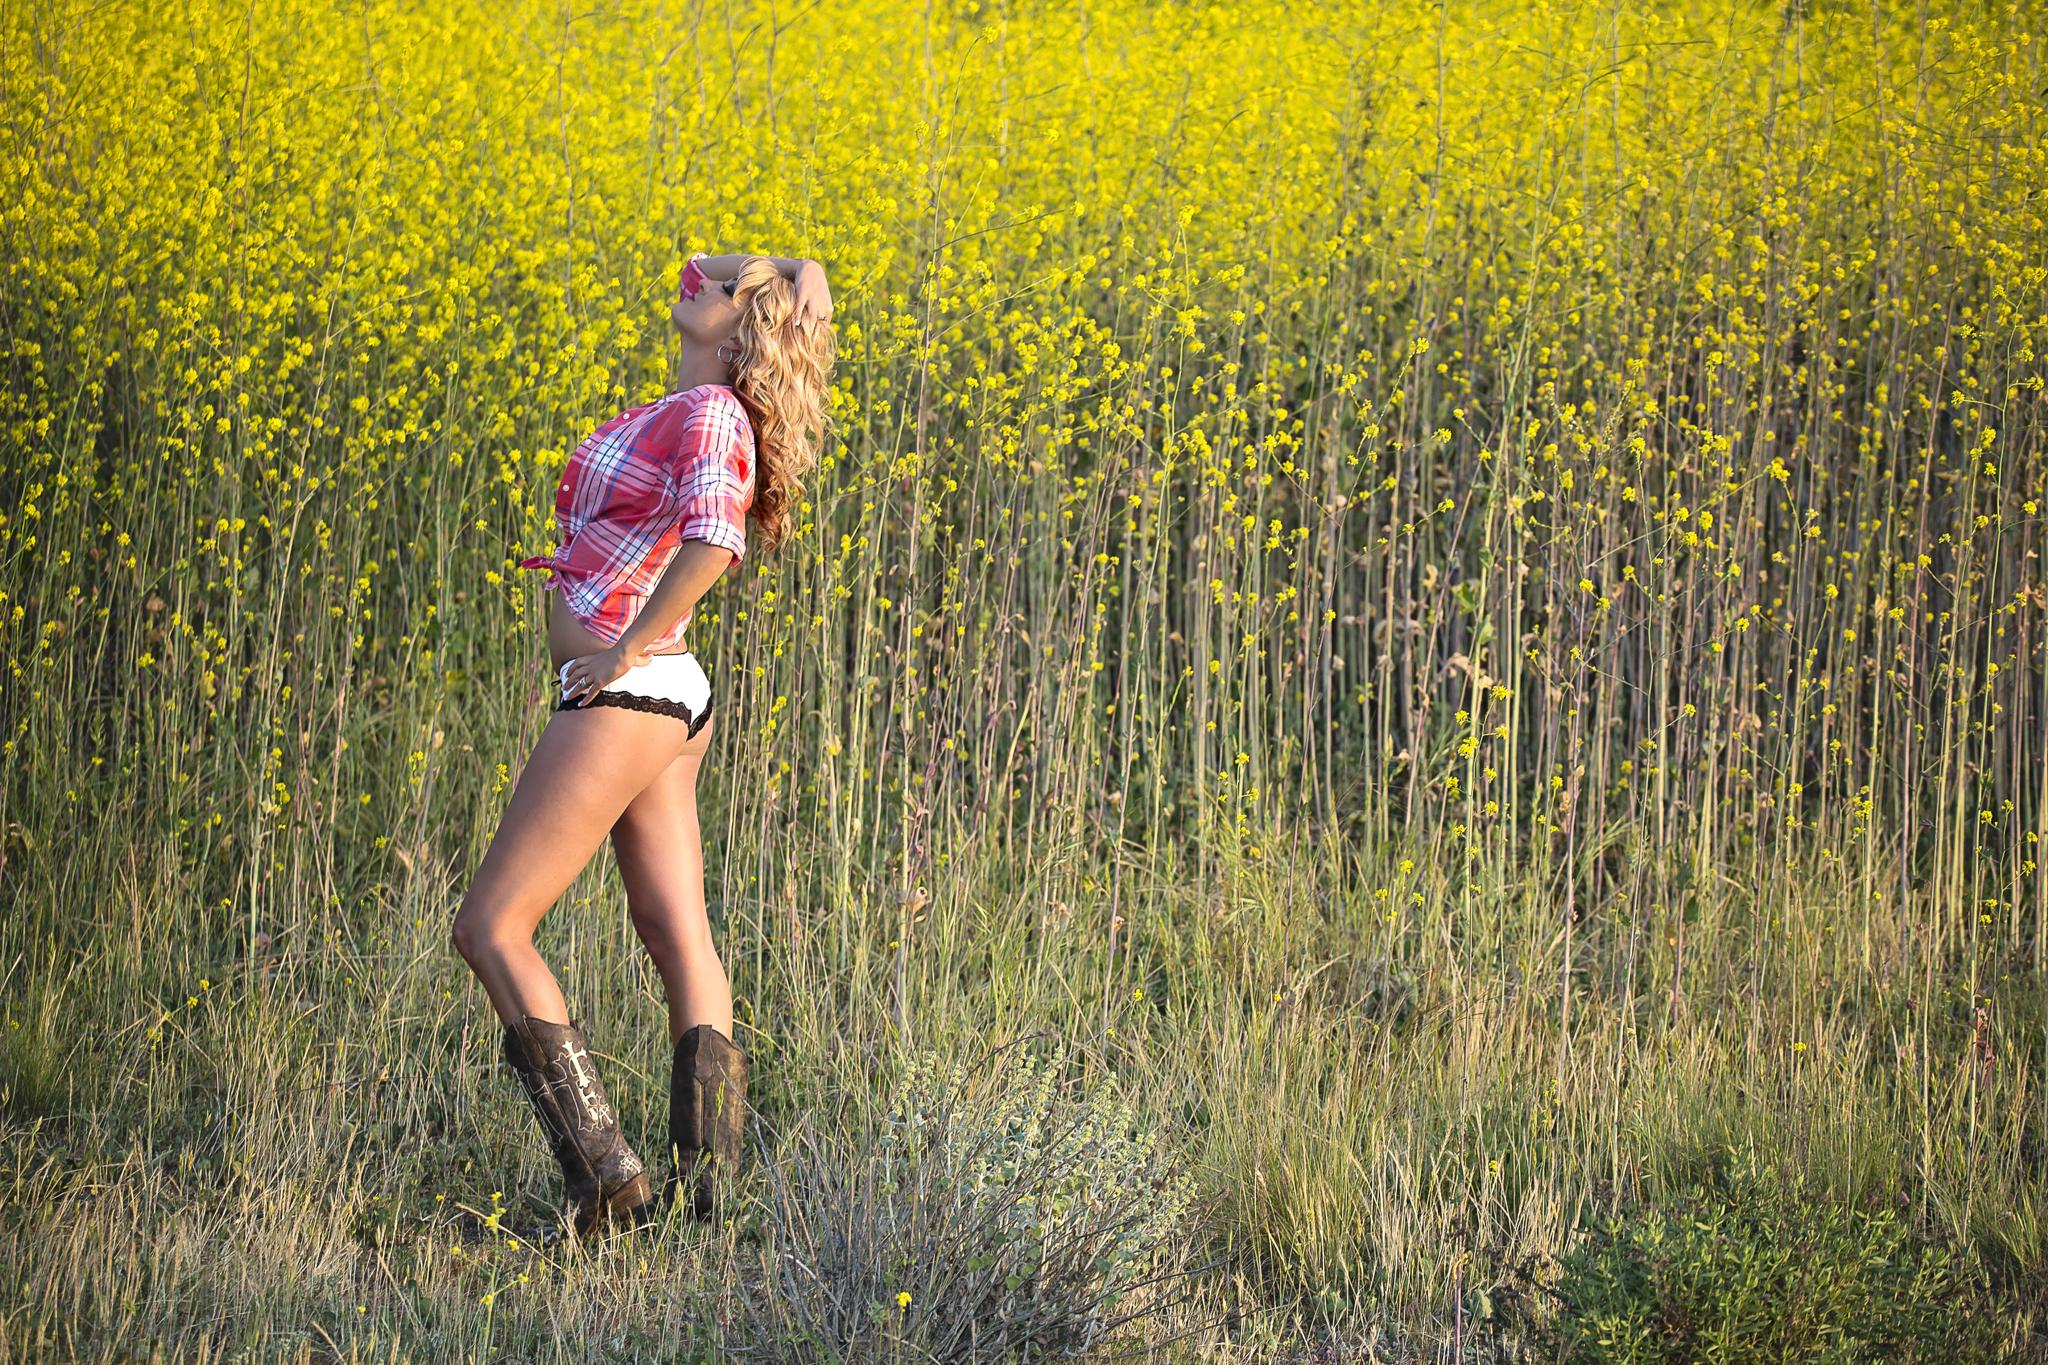 In Fields of Yellow by KRUSH Photography